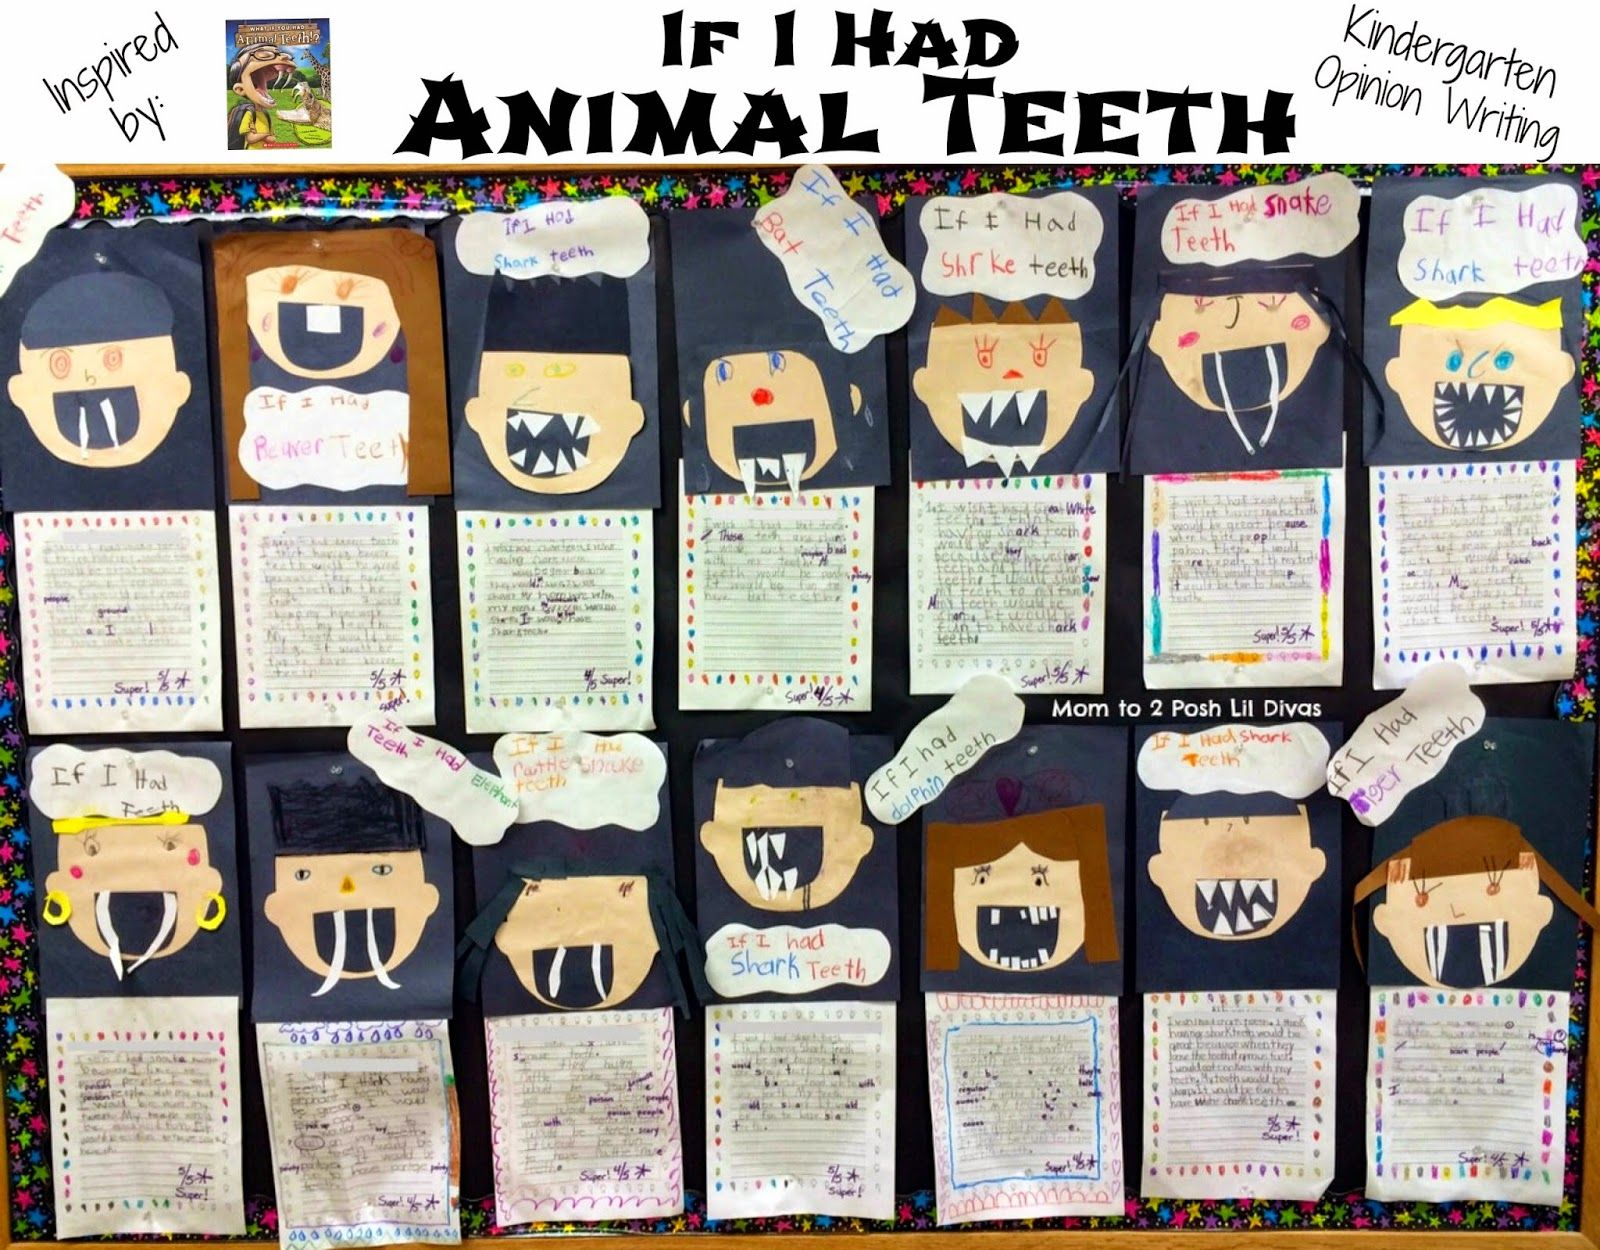 Writing Activity Amp Craft For Book What If You Had Animal Teeth By Sandra Markle From Mom To 2